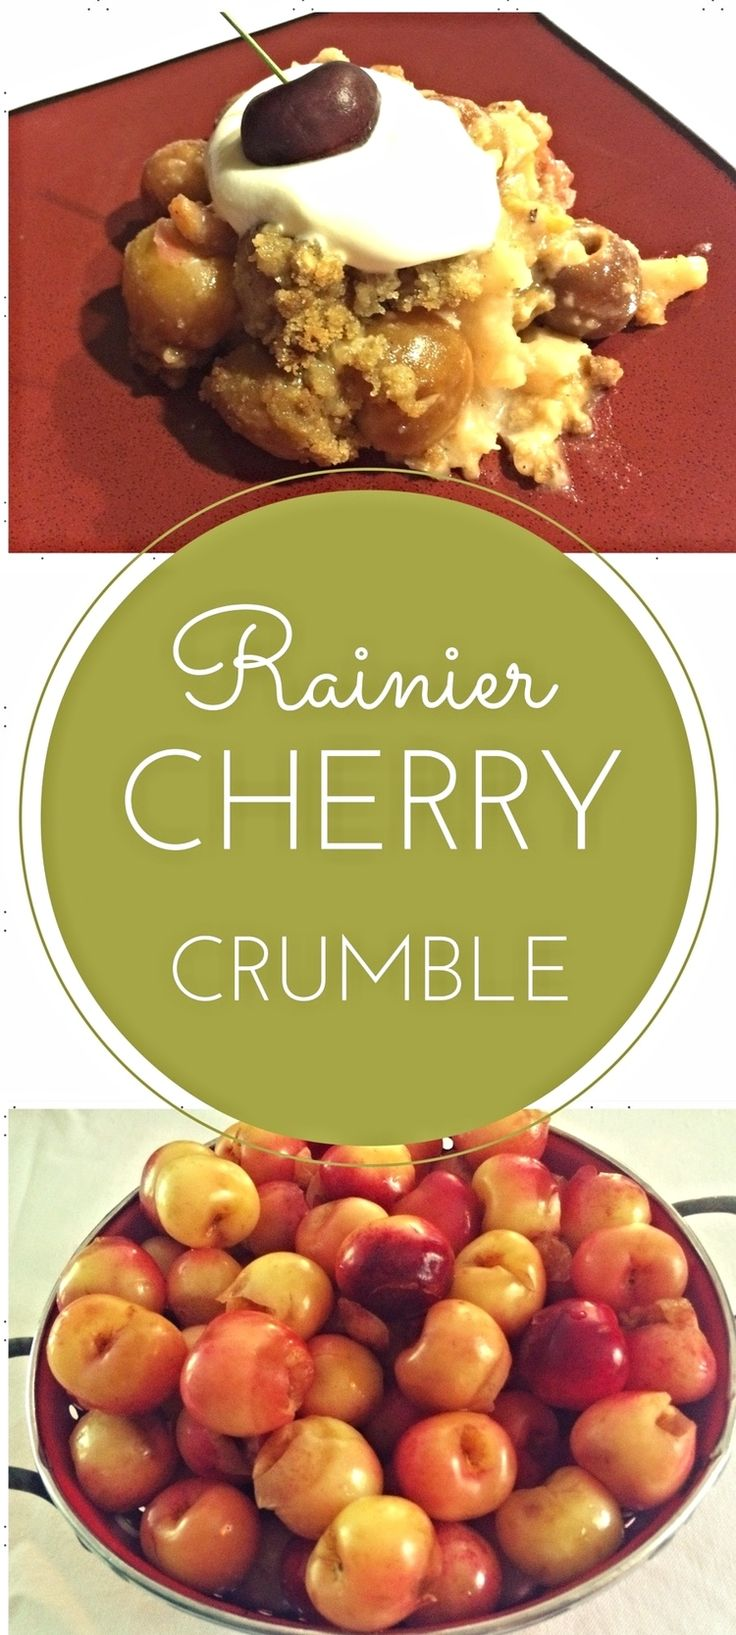 Welcome to the Sunday Fitness Simple, but delicious seasonal dessert recipe: Rainier Cherry Crumble. Rainier cherries are large sweet cherries from the Pacific Northwest. These  cherries have a distinctive color and are sweeter than Bing cherries.